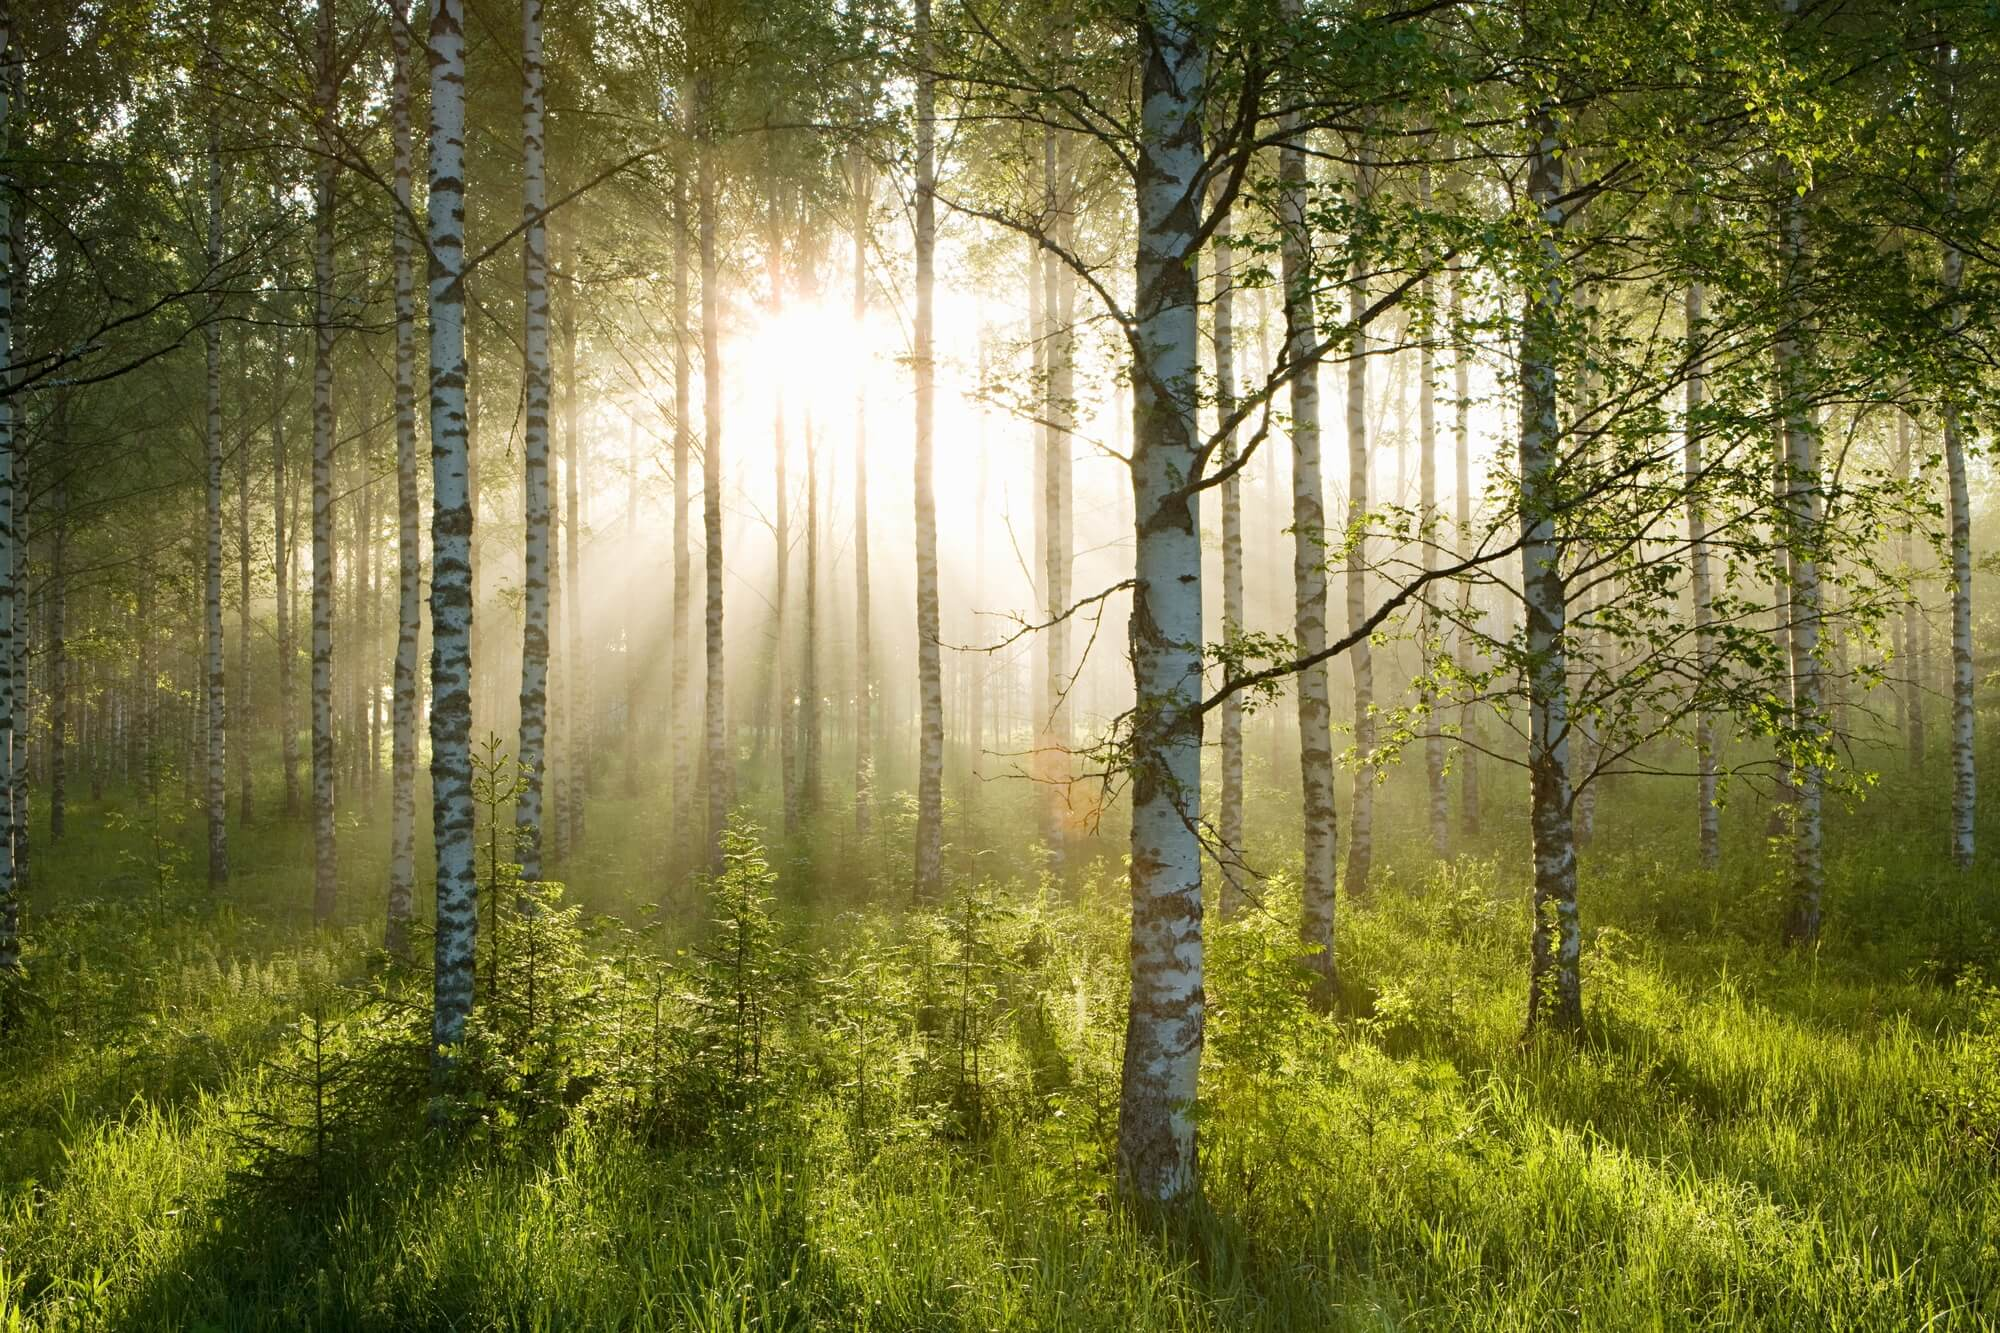 Birch Forest Sunlight Wall Mural \u0026 Birch Forest Sunlight Wallpaper  Wallsauce USA